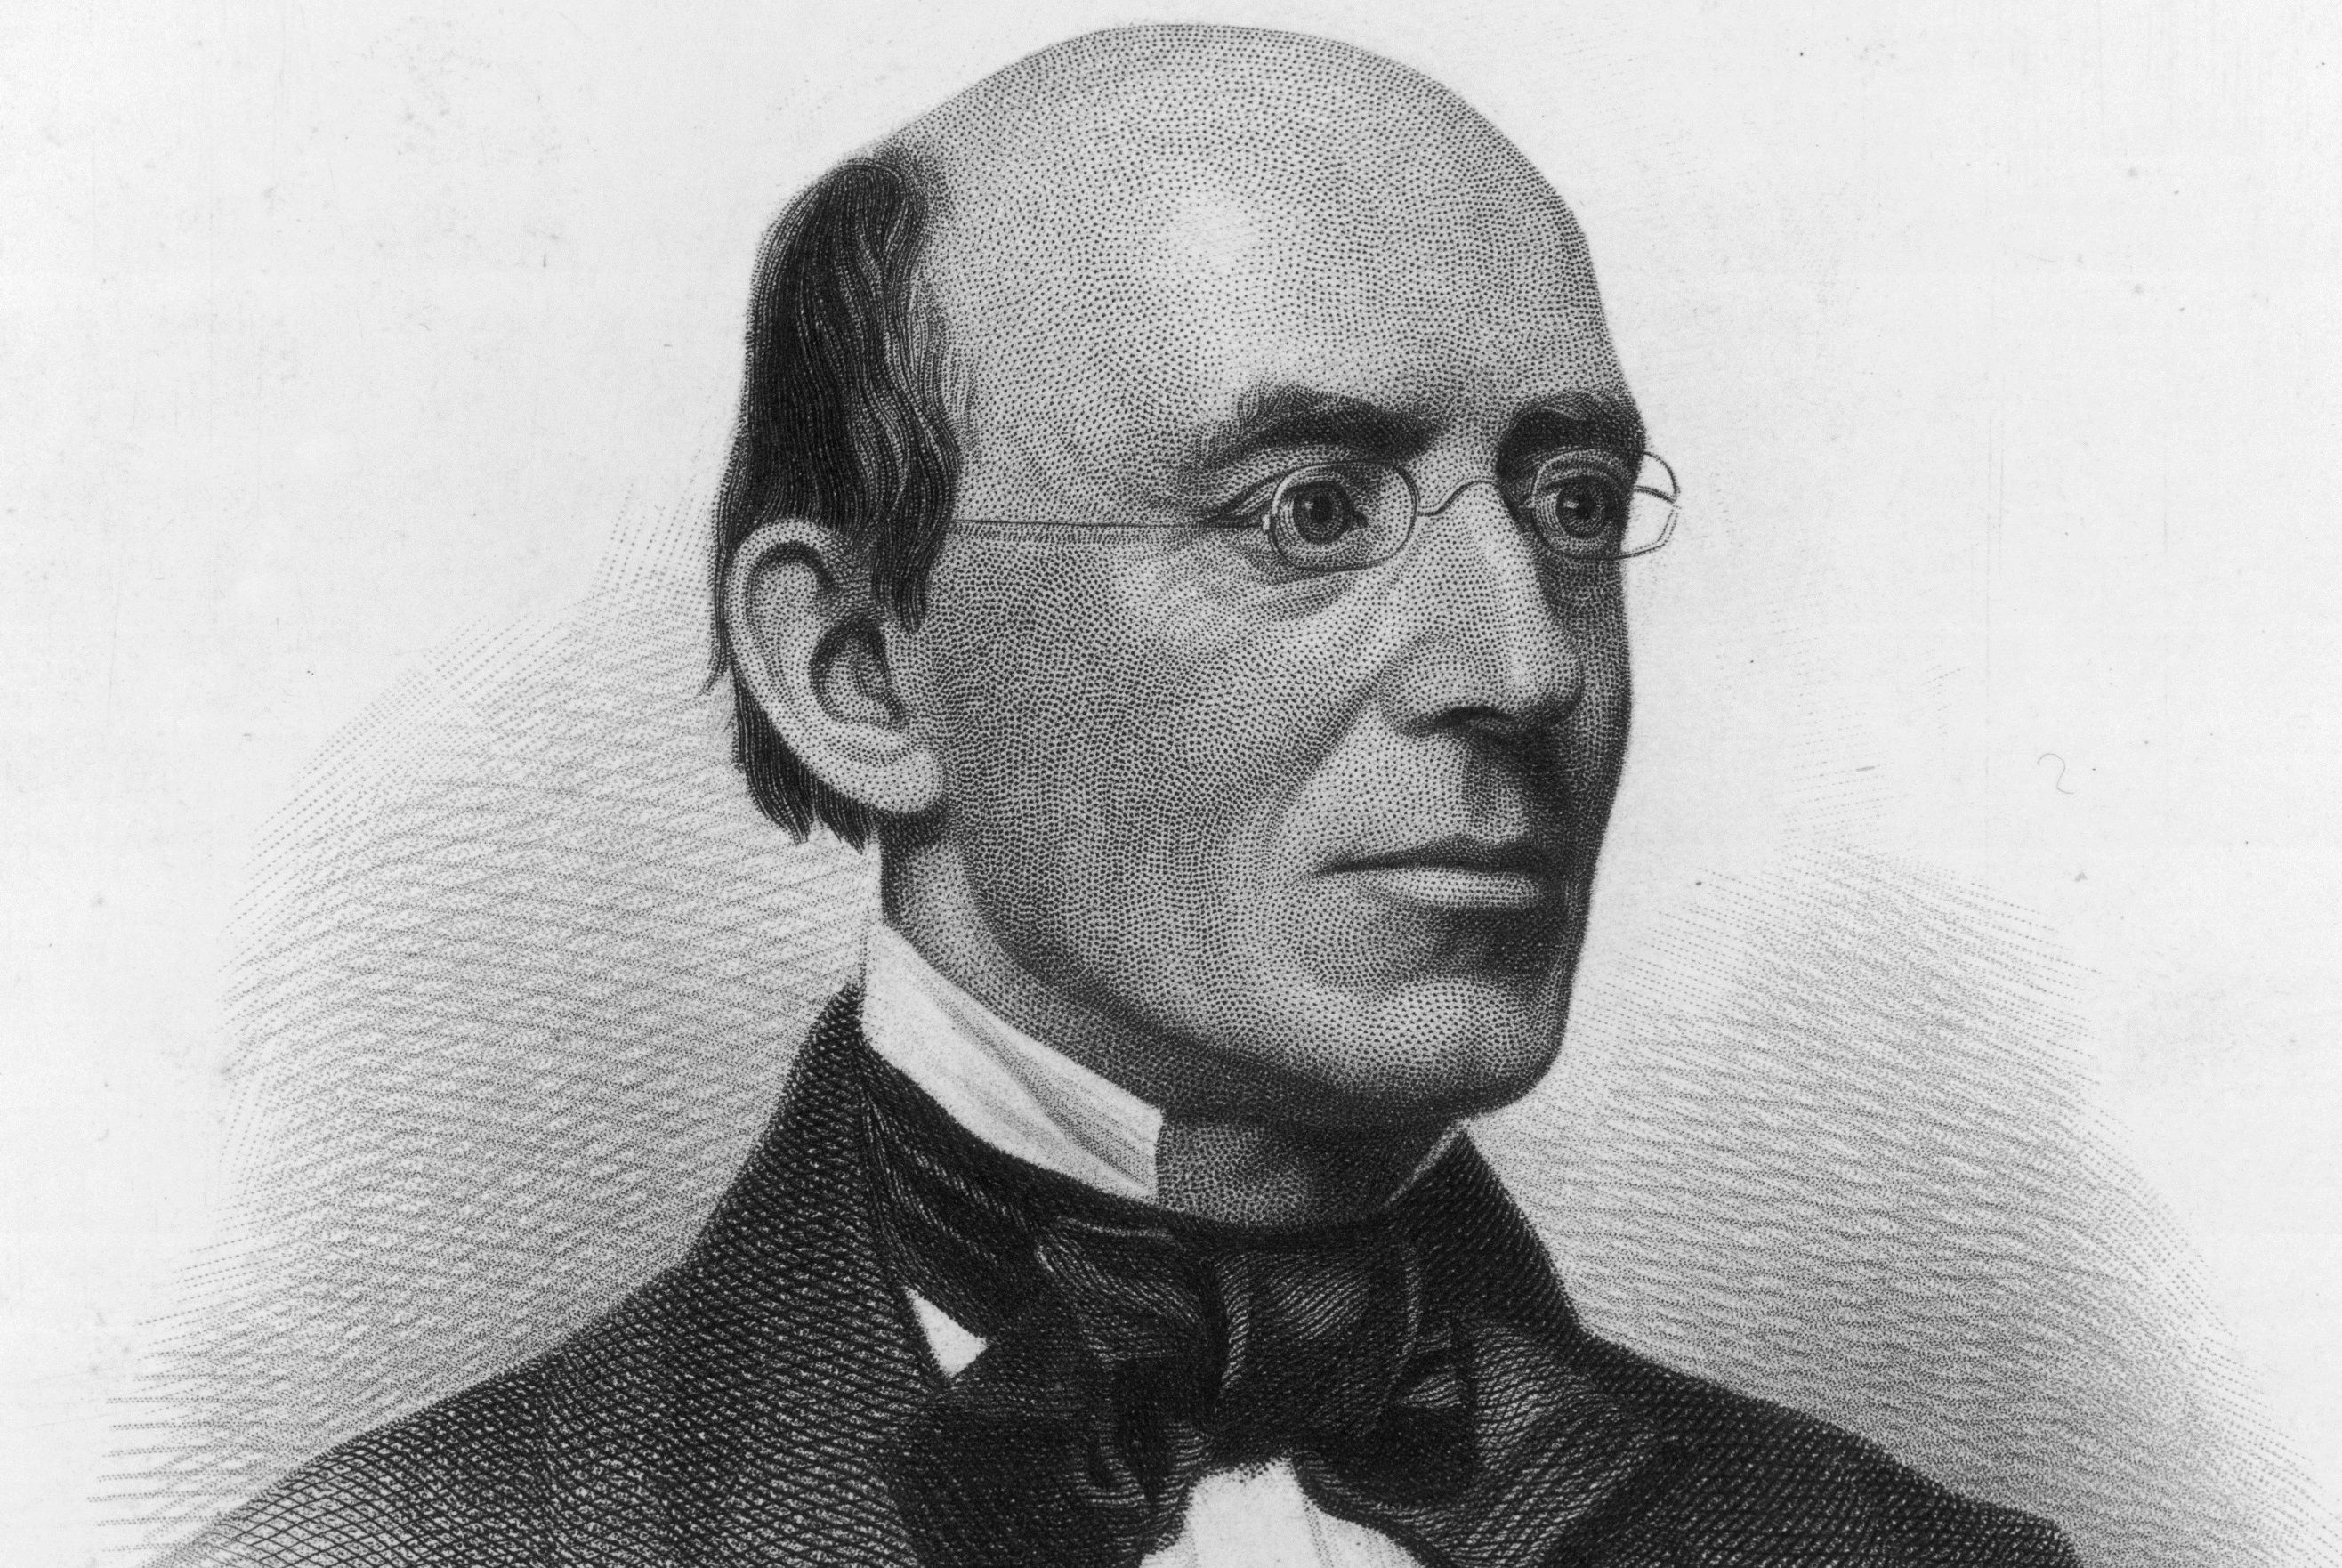 a biography of william lloyd garrison William lloyd garrison (1805-1879), american editor, reformer, and antislavery crusader, became the symbol of the age of aggressive abolitionism william lloyd garrison was born on dec 10, 1805, in newburyport, mass his father deserted the family in 1808, and the three children were raised in near .